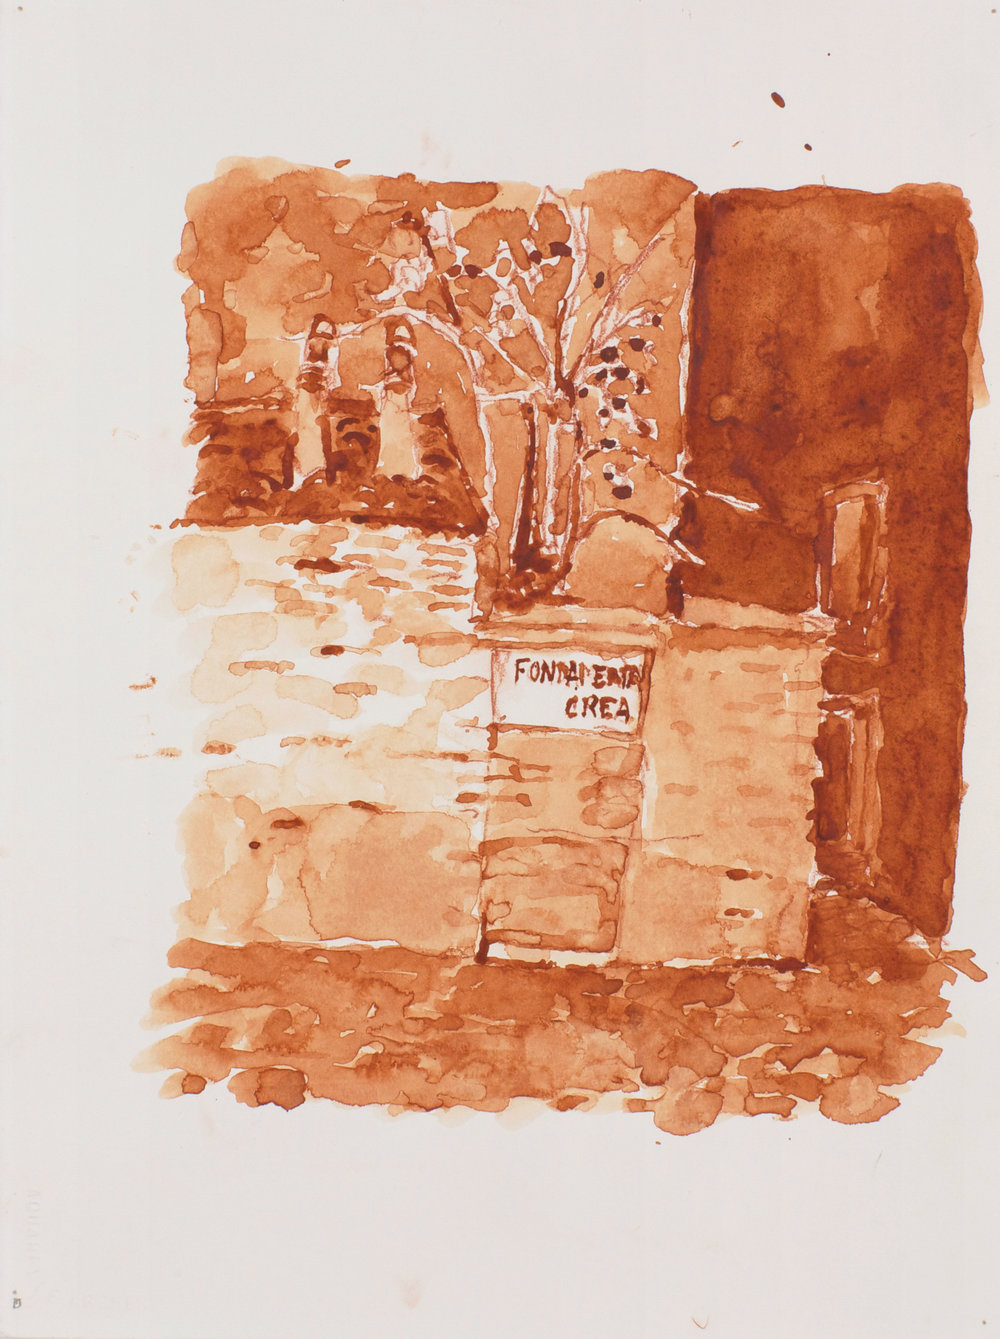 2003_Fondamenta_Crea_Venice_watercolour_and_red_conte_on_paper_15x11in_38x28cm_WPF034.jpg